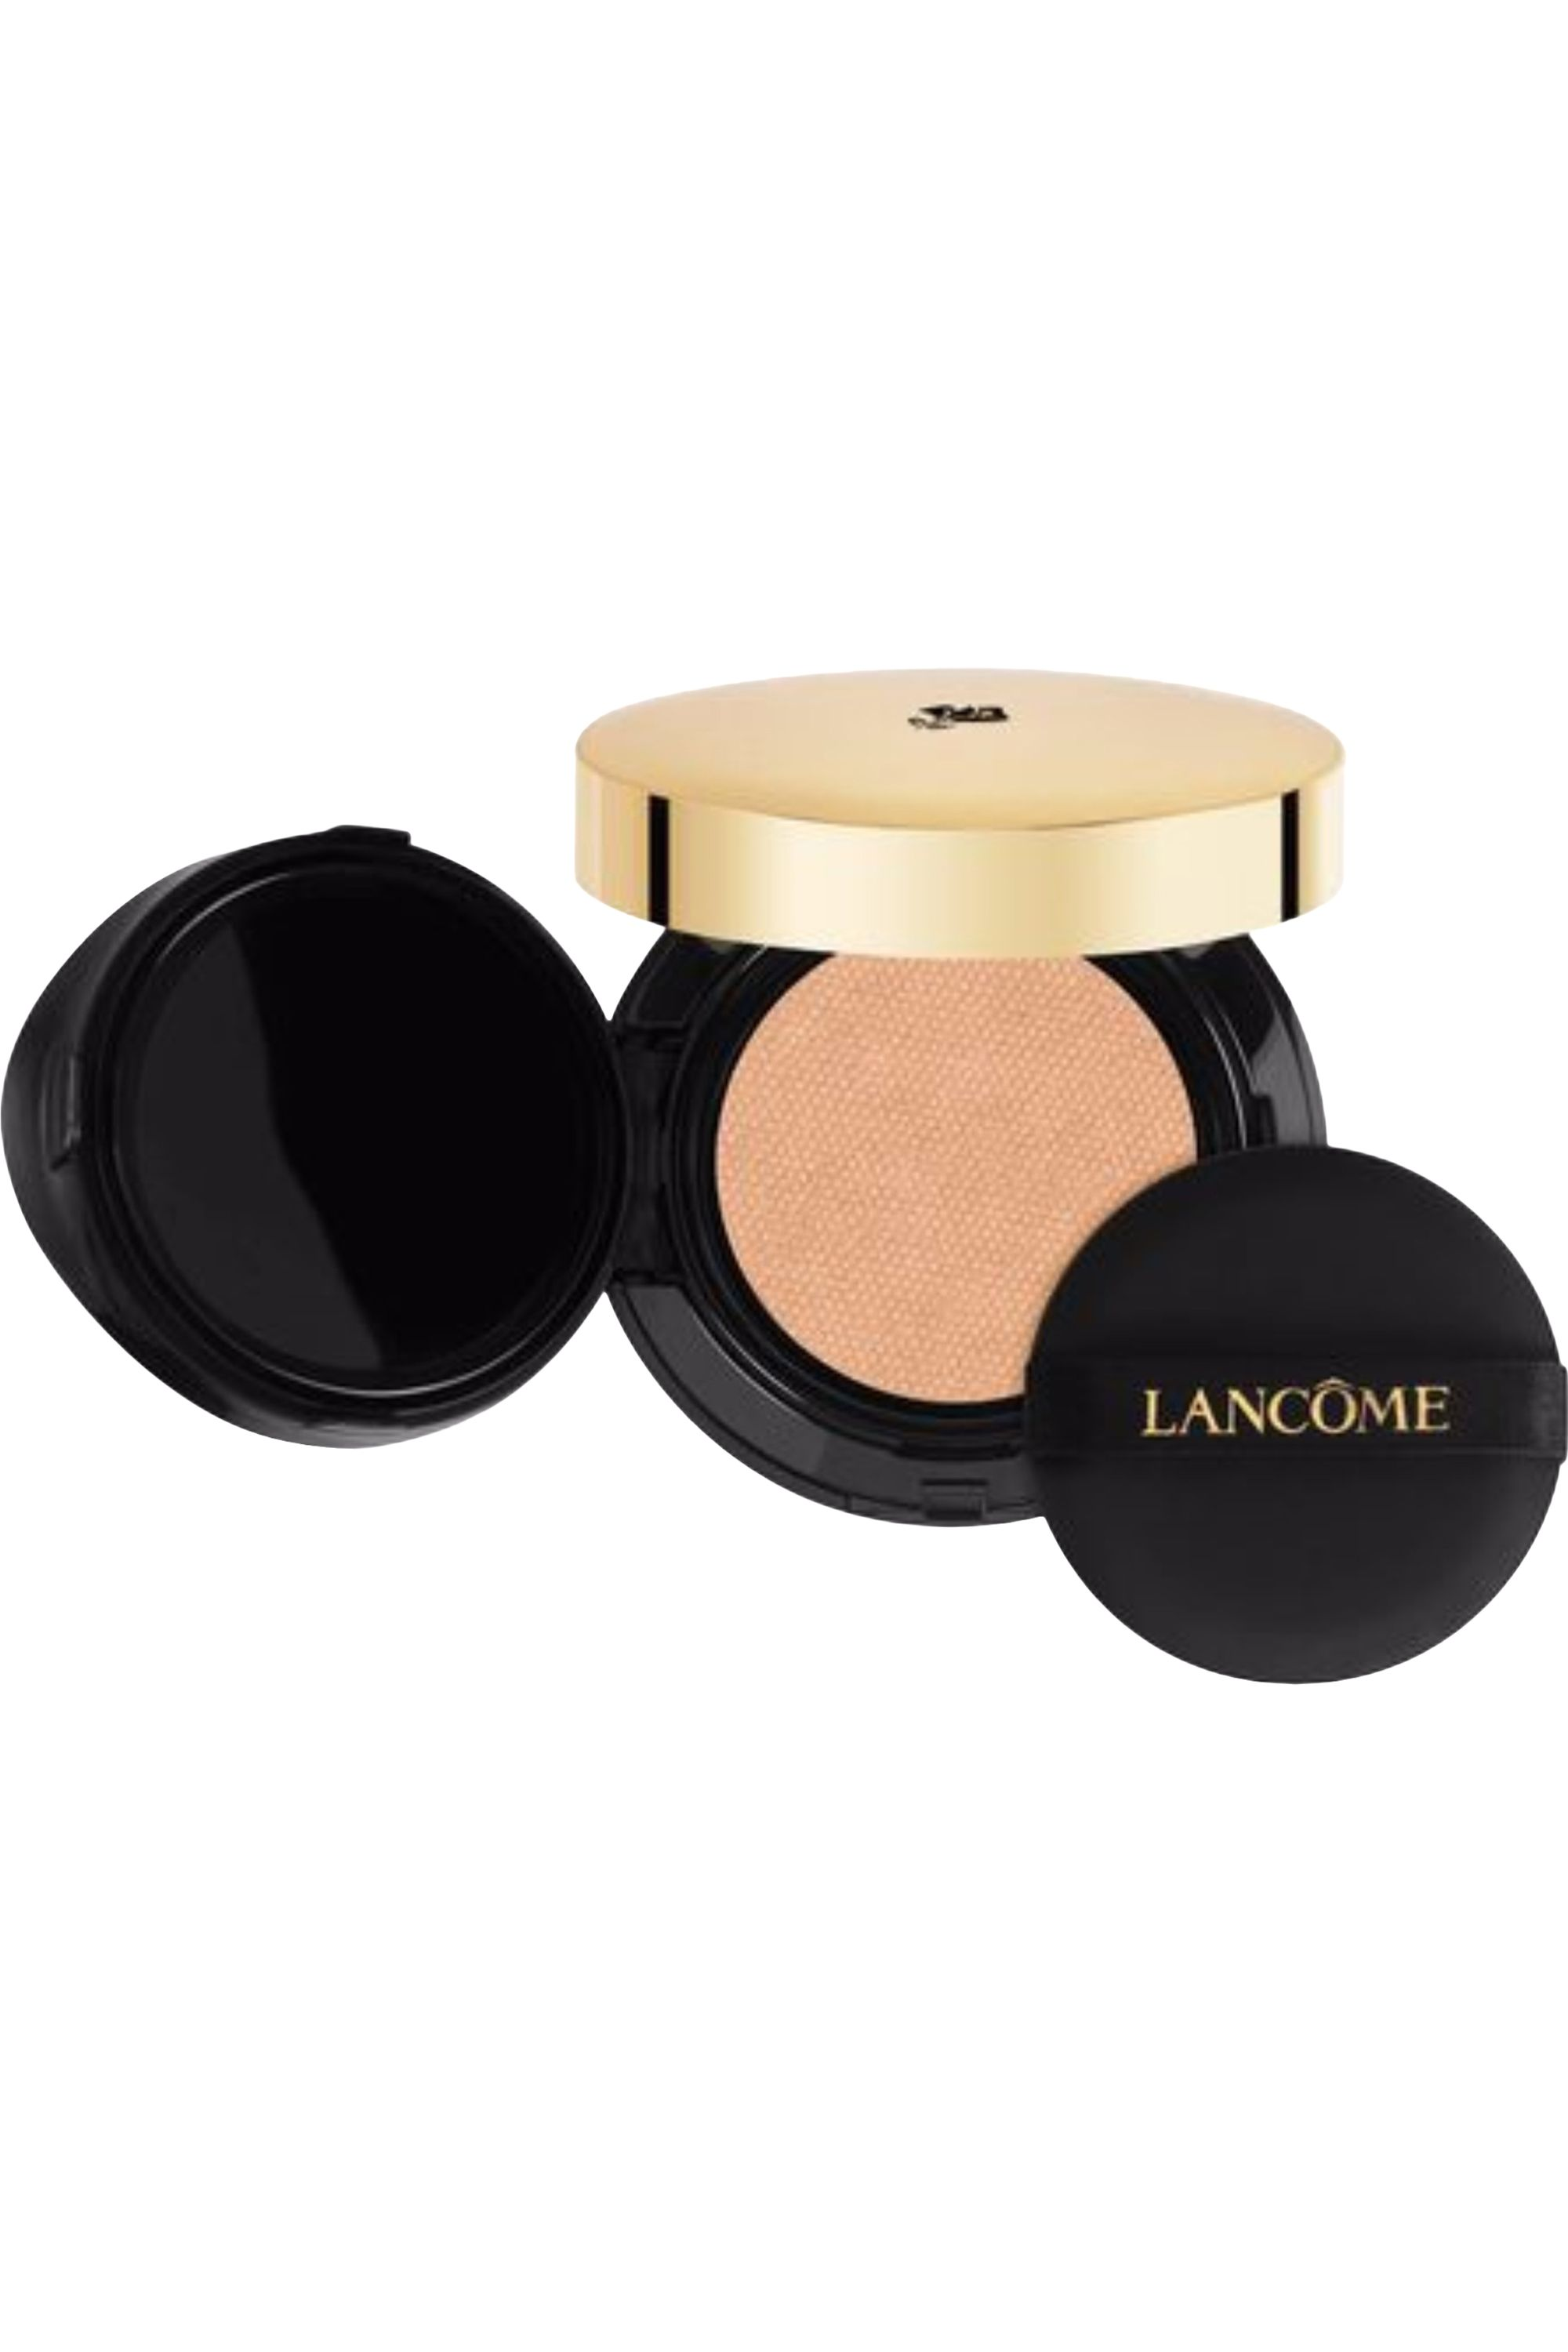 Blissim : Lancôme - Teint Idole Ultra Cushion - Teint Idole Ultra Cushion